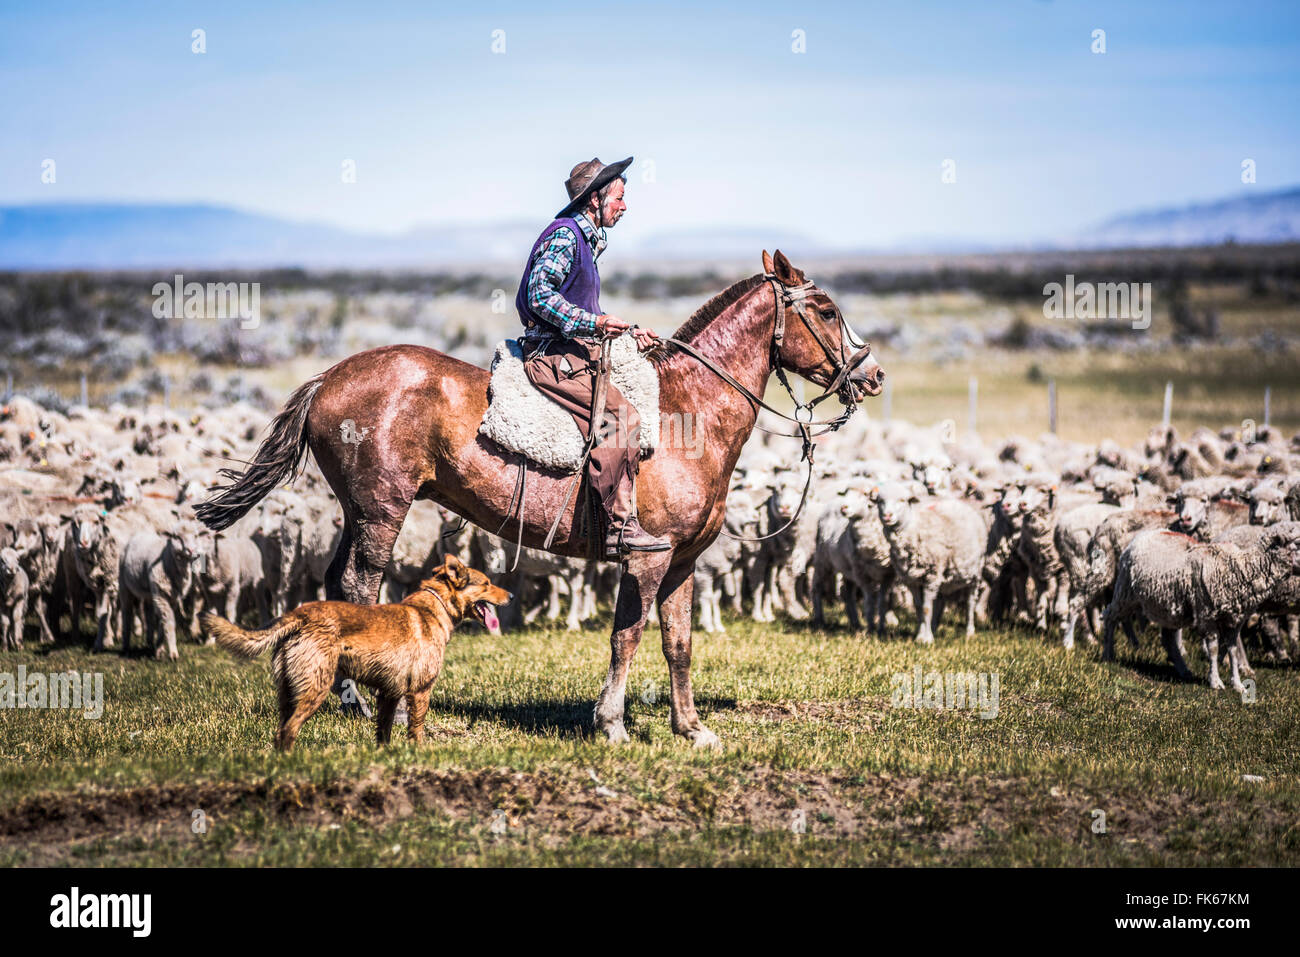 Gauchos riding horses to round up sheep, El Chalten, Patagonia, Argentina, South America - Stock Image